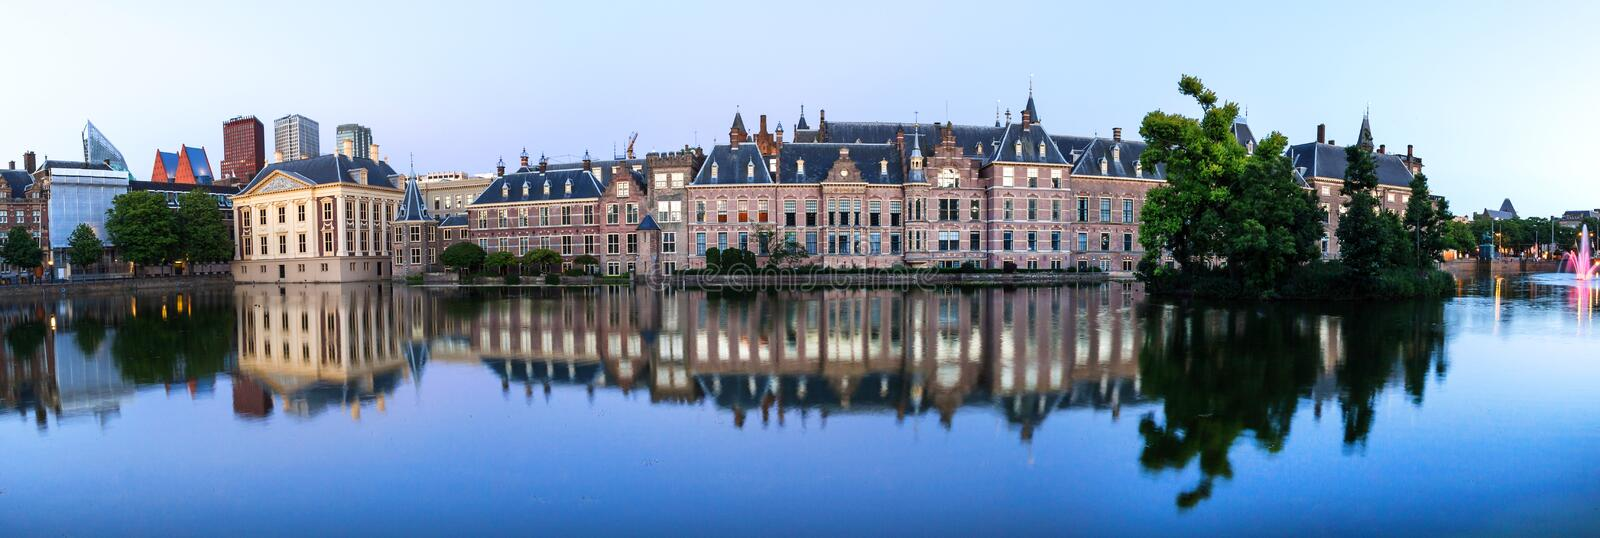 The hague netherlands evening reflections high definition panorama stock images